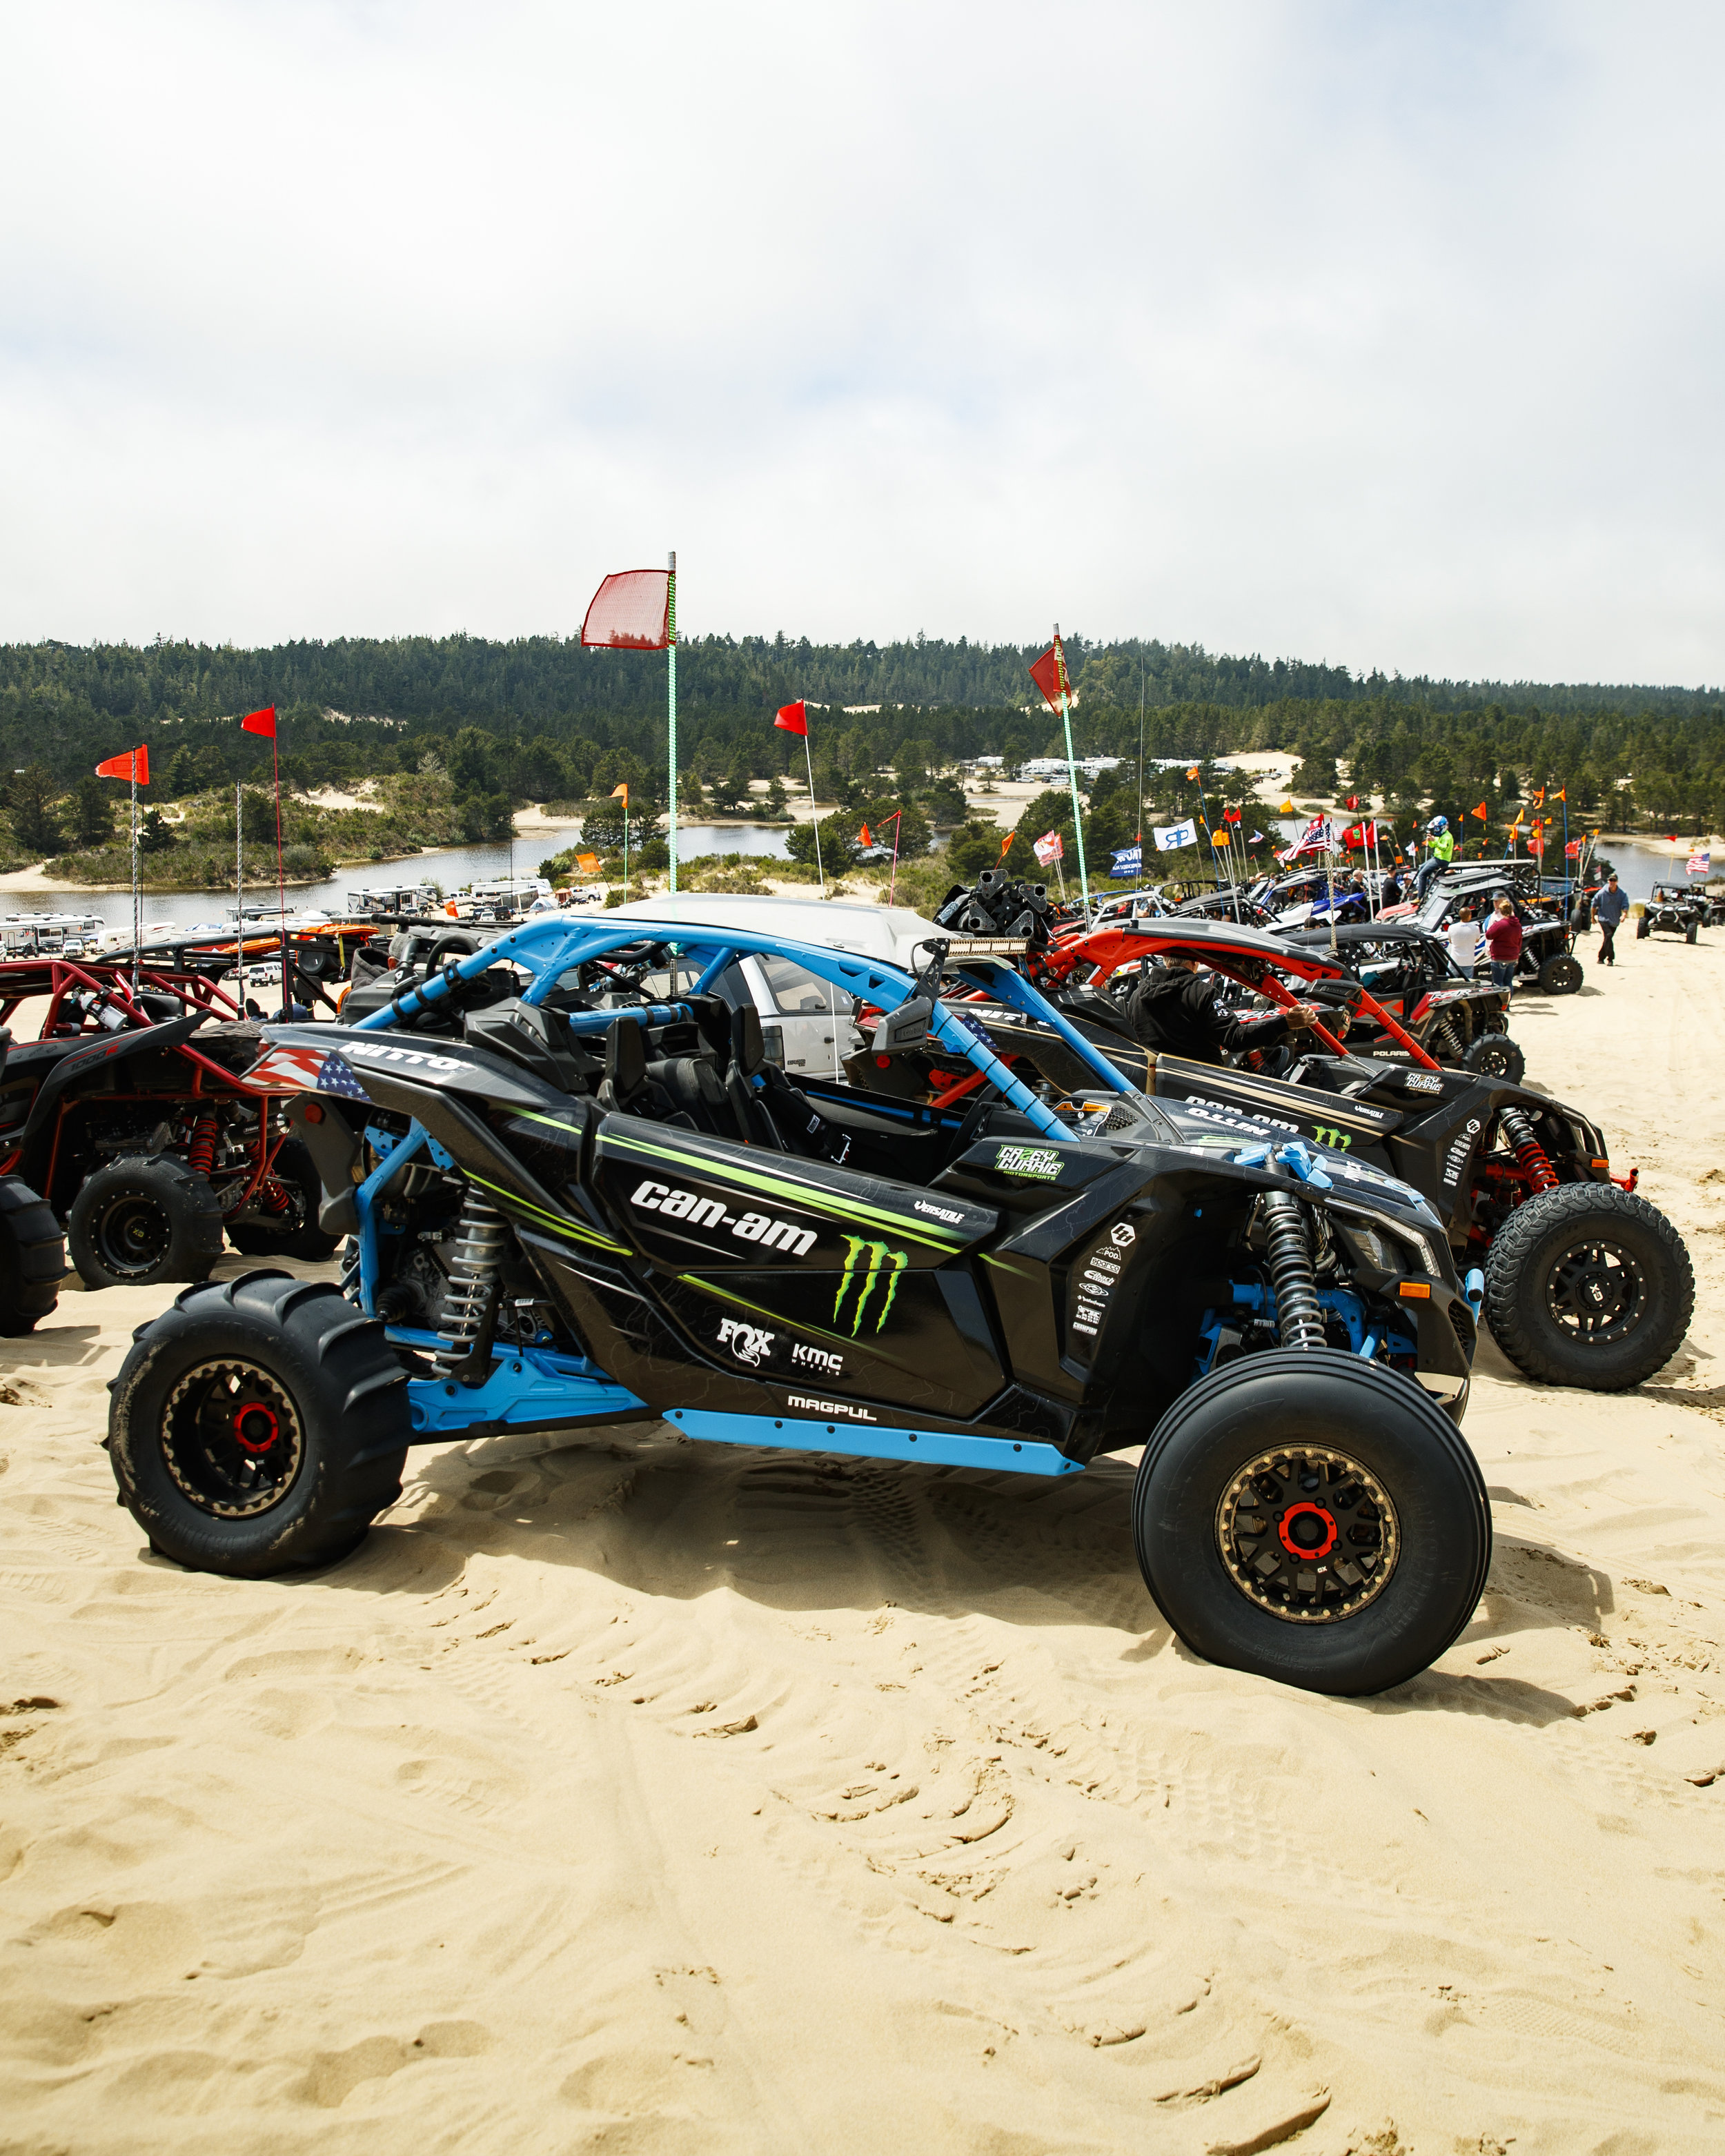 6_29_CaseyCurrie_UTVTakeover_CoosBay_Oregon_Can-Am_4x5_011.jpg